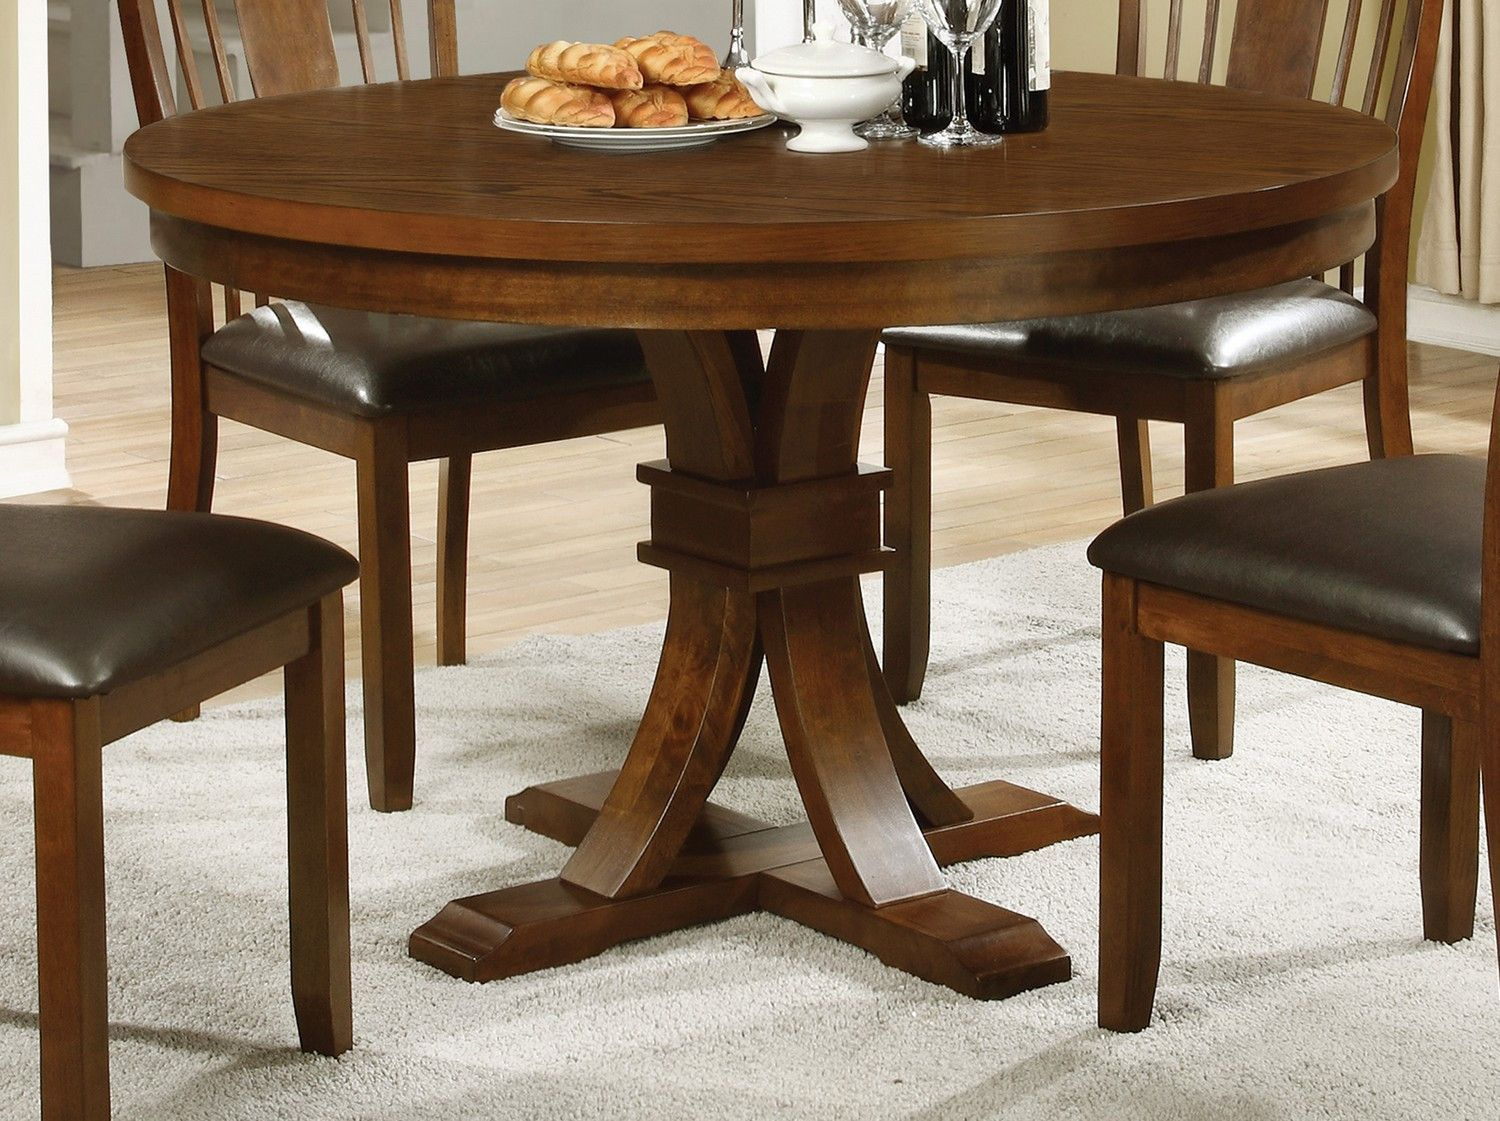 Round Table Special Clearance 50 Off Special Order Abrams Round Table Co 106480 330